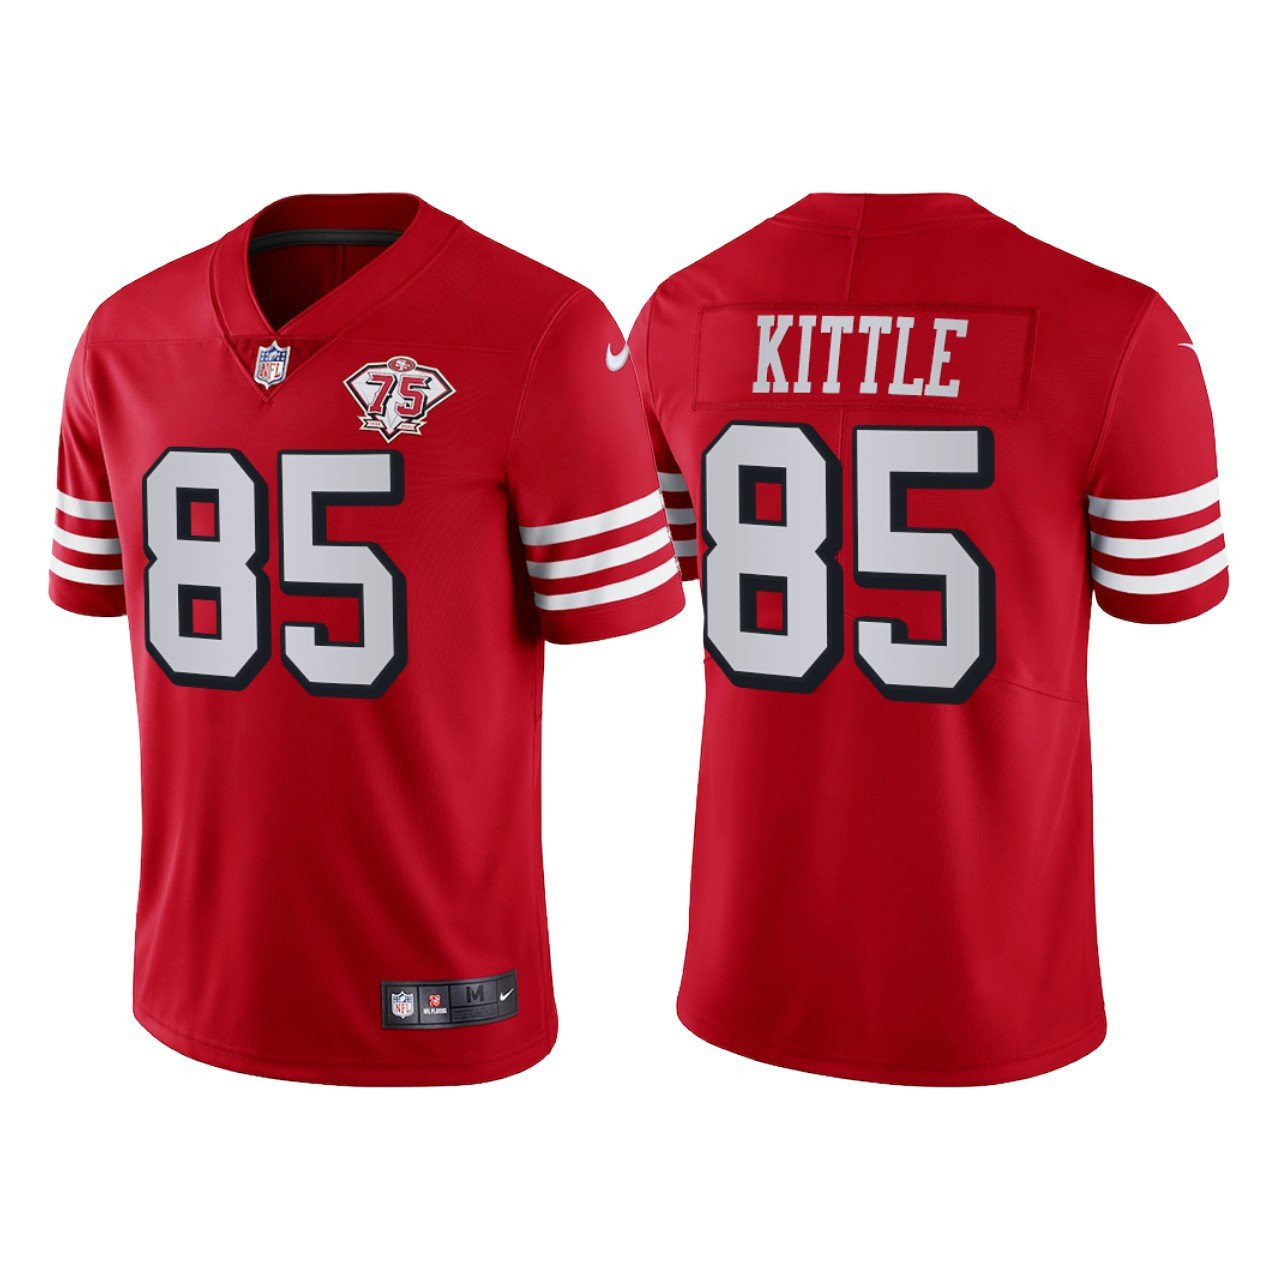 Men's #85 George Kittle San Francisco 49ers Red Throwback Limited Jersey 75th Anniversary Stitched